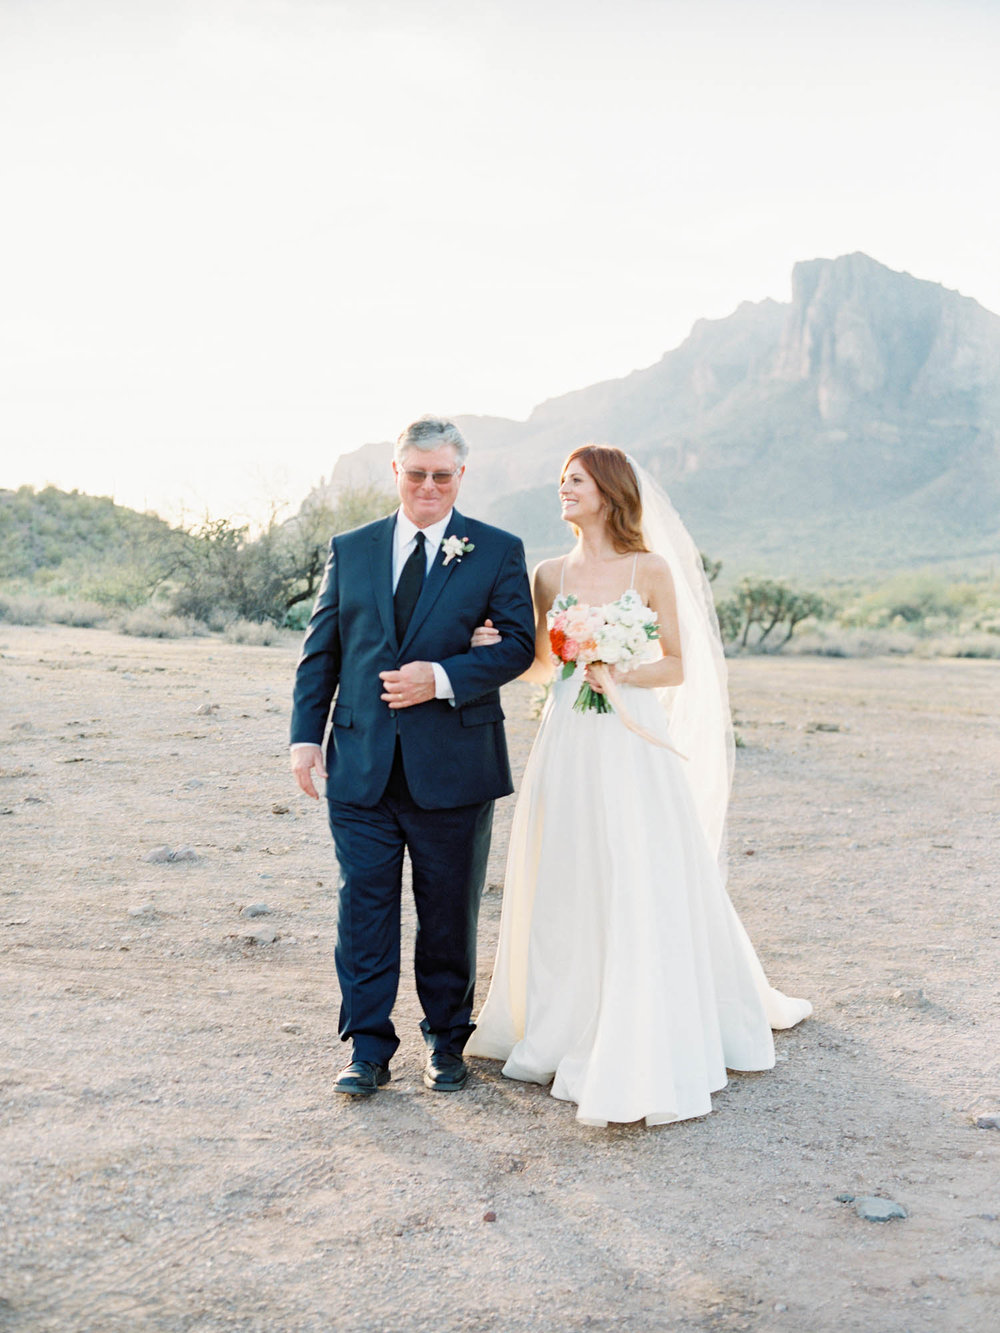 Cloth and Flame Arizona Desert Elopement Wedding-31.jpg